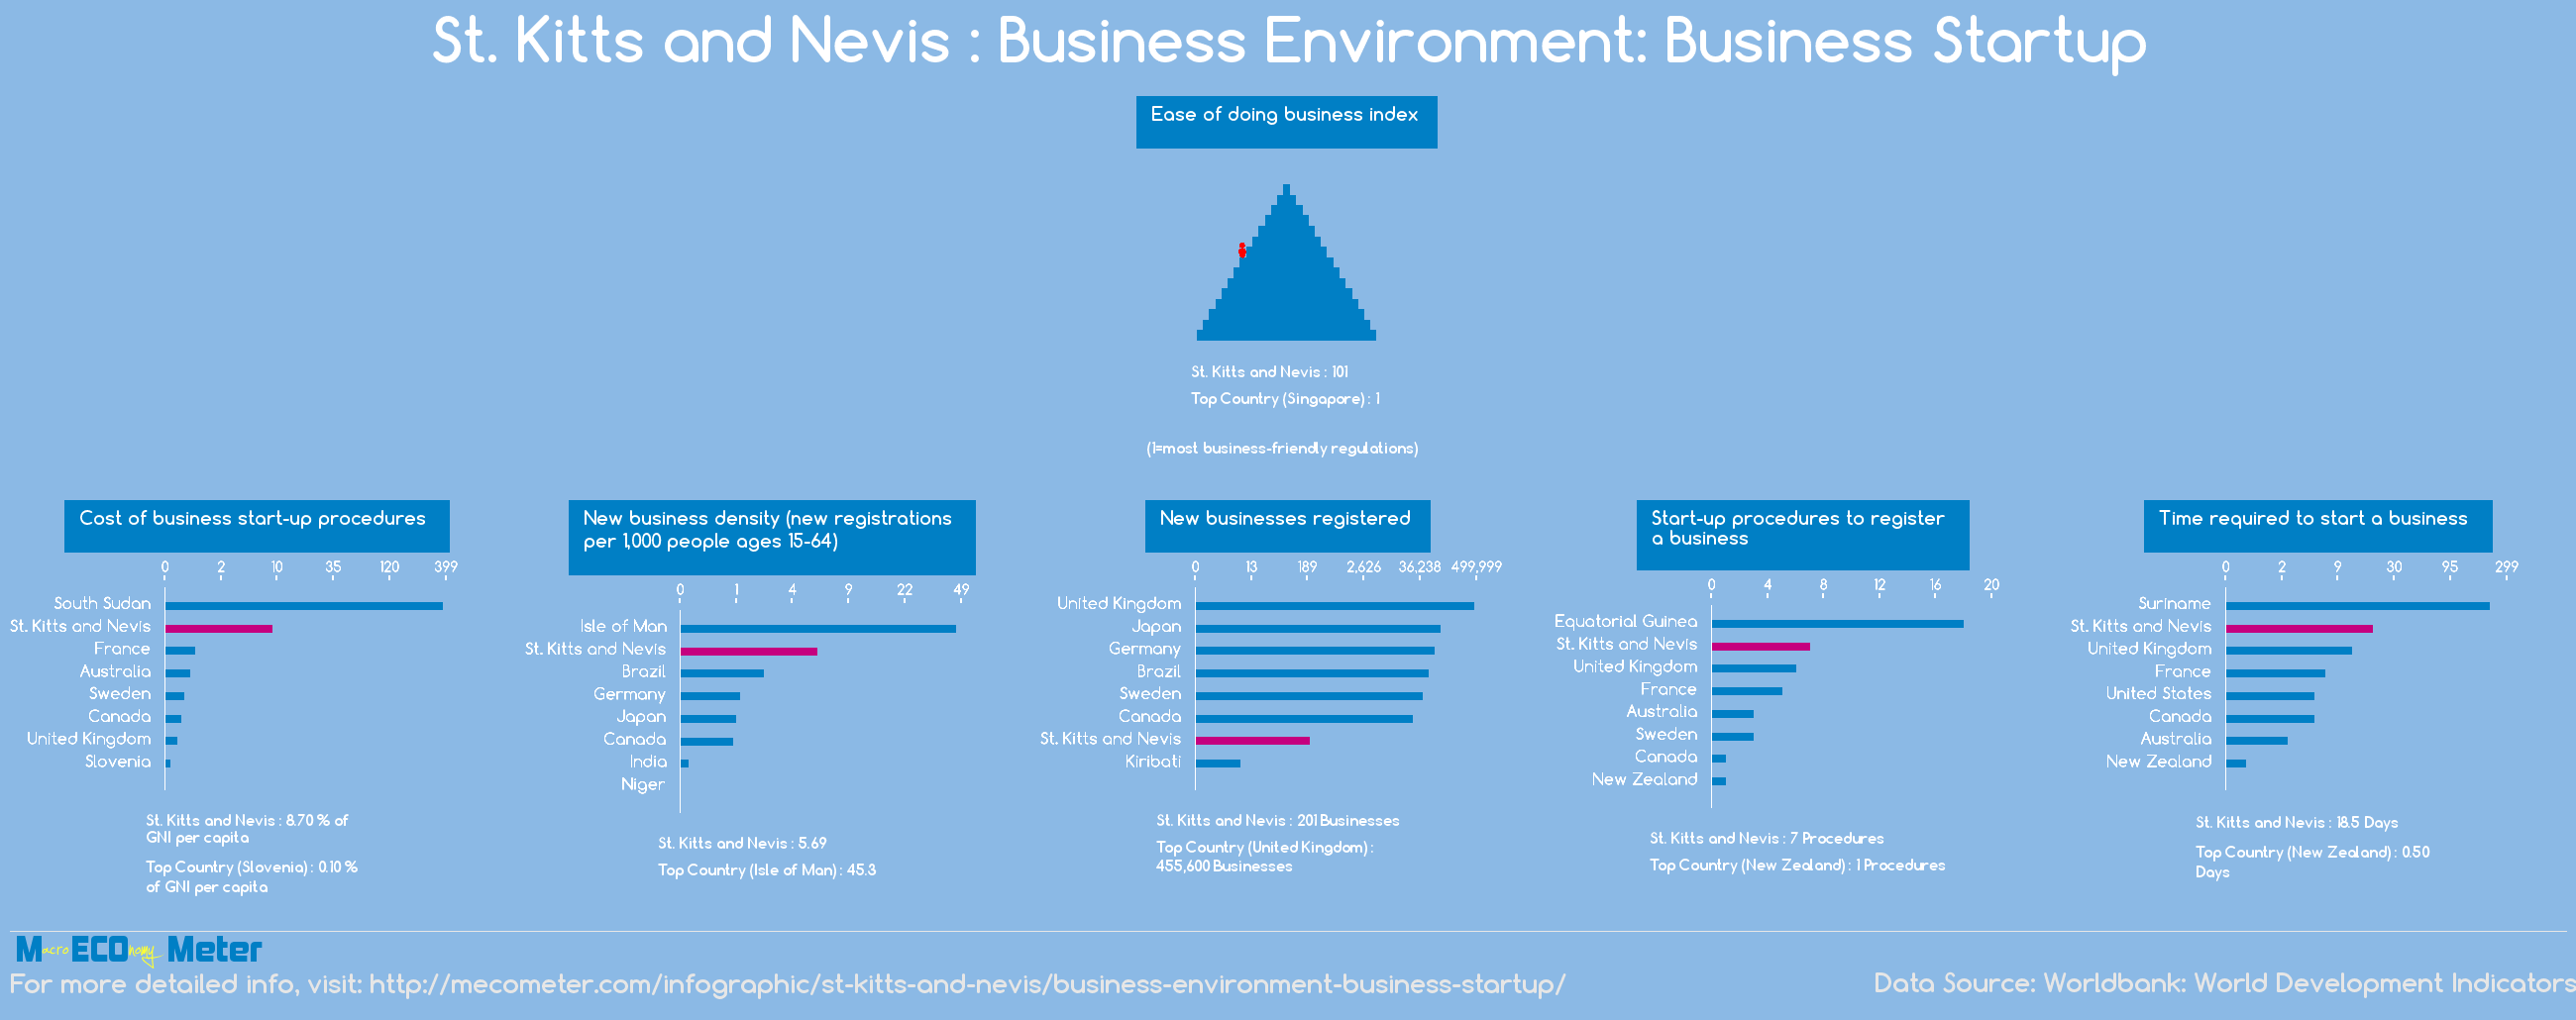 St. Kitts and Nevis : Business Environment: Business Startup